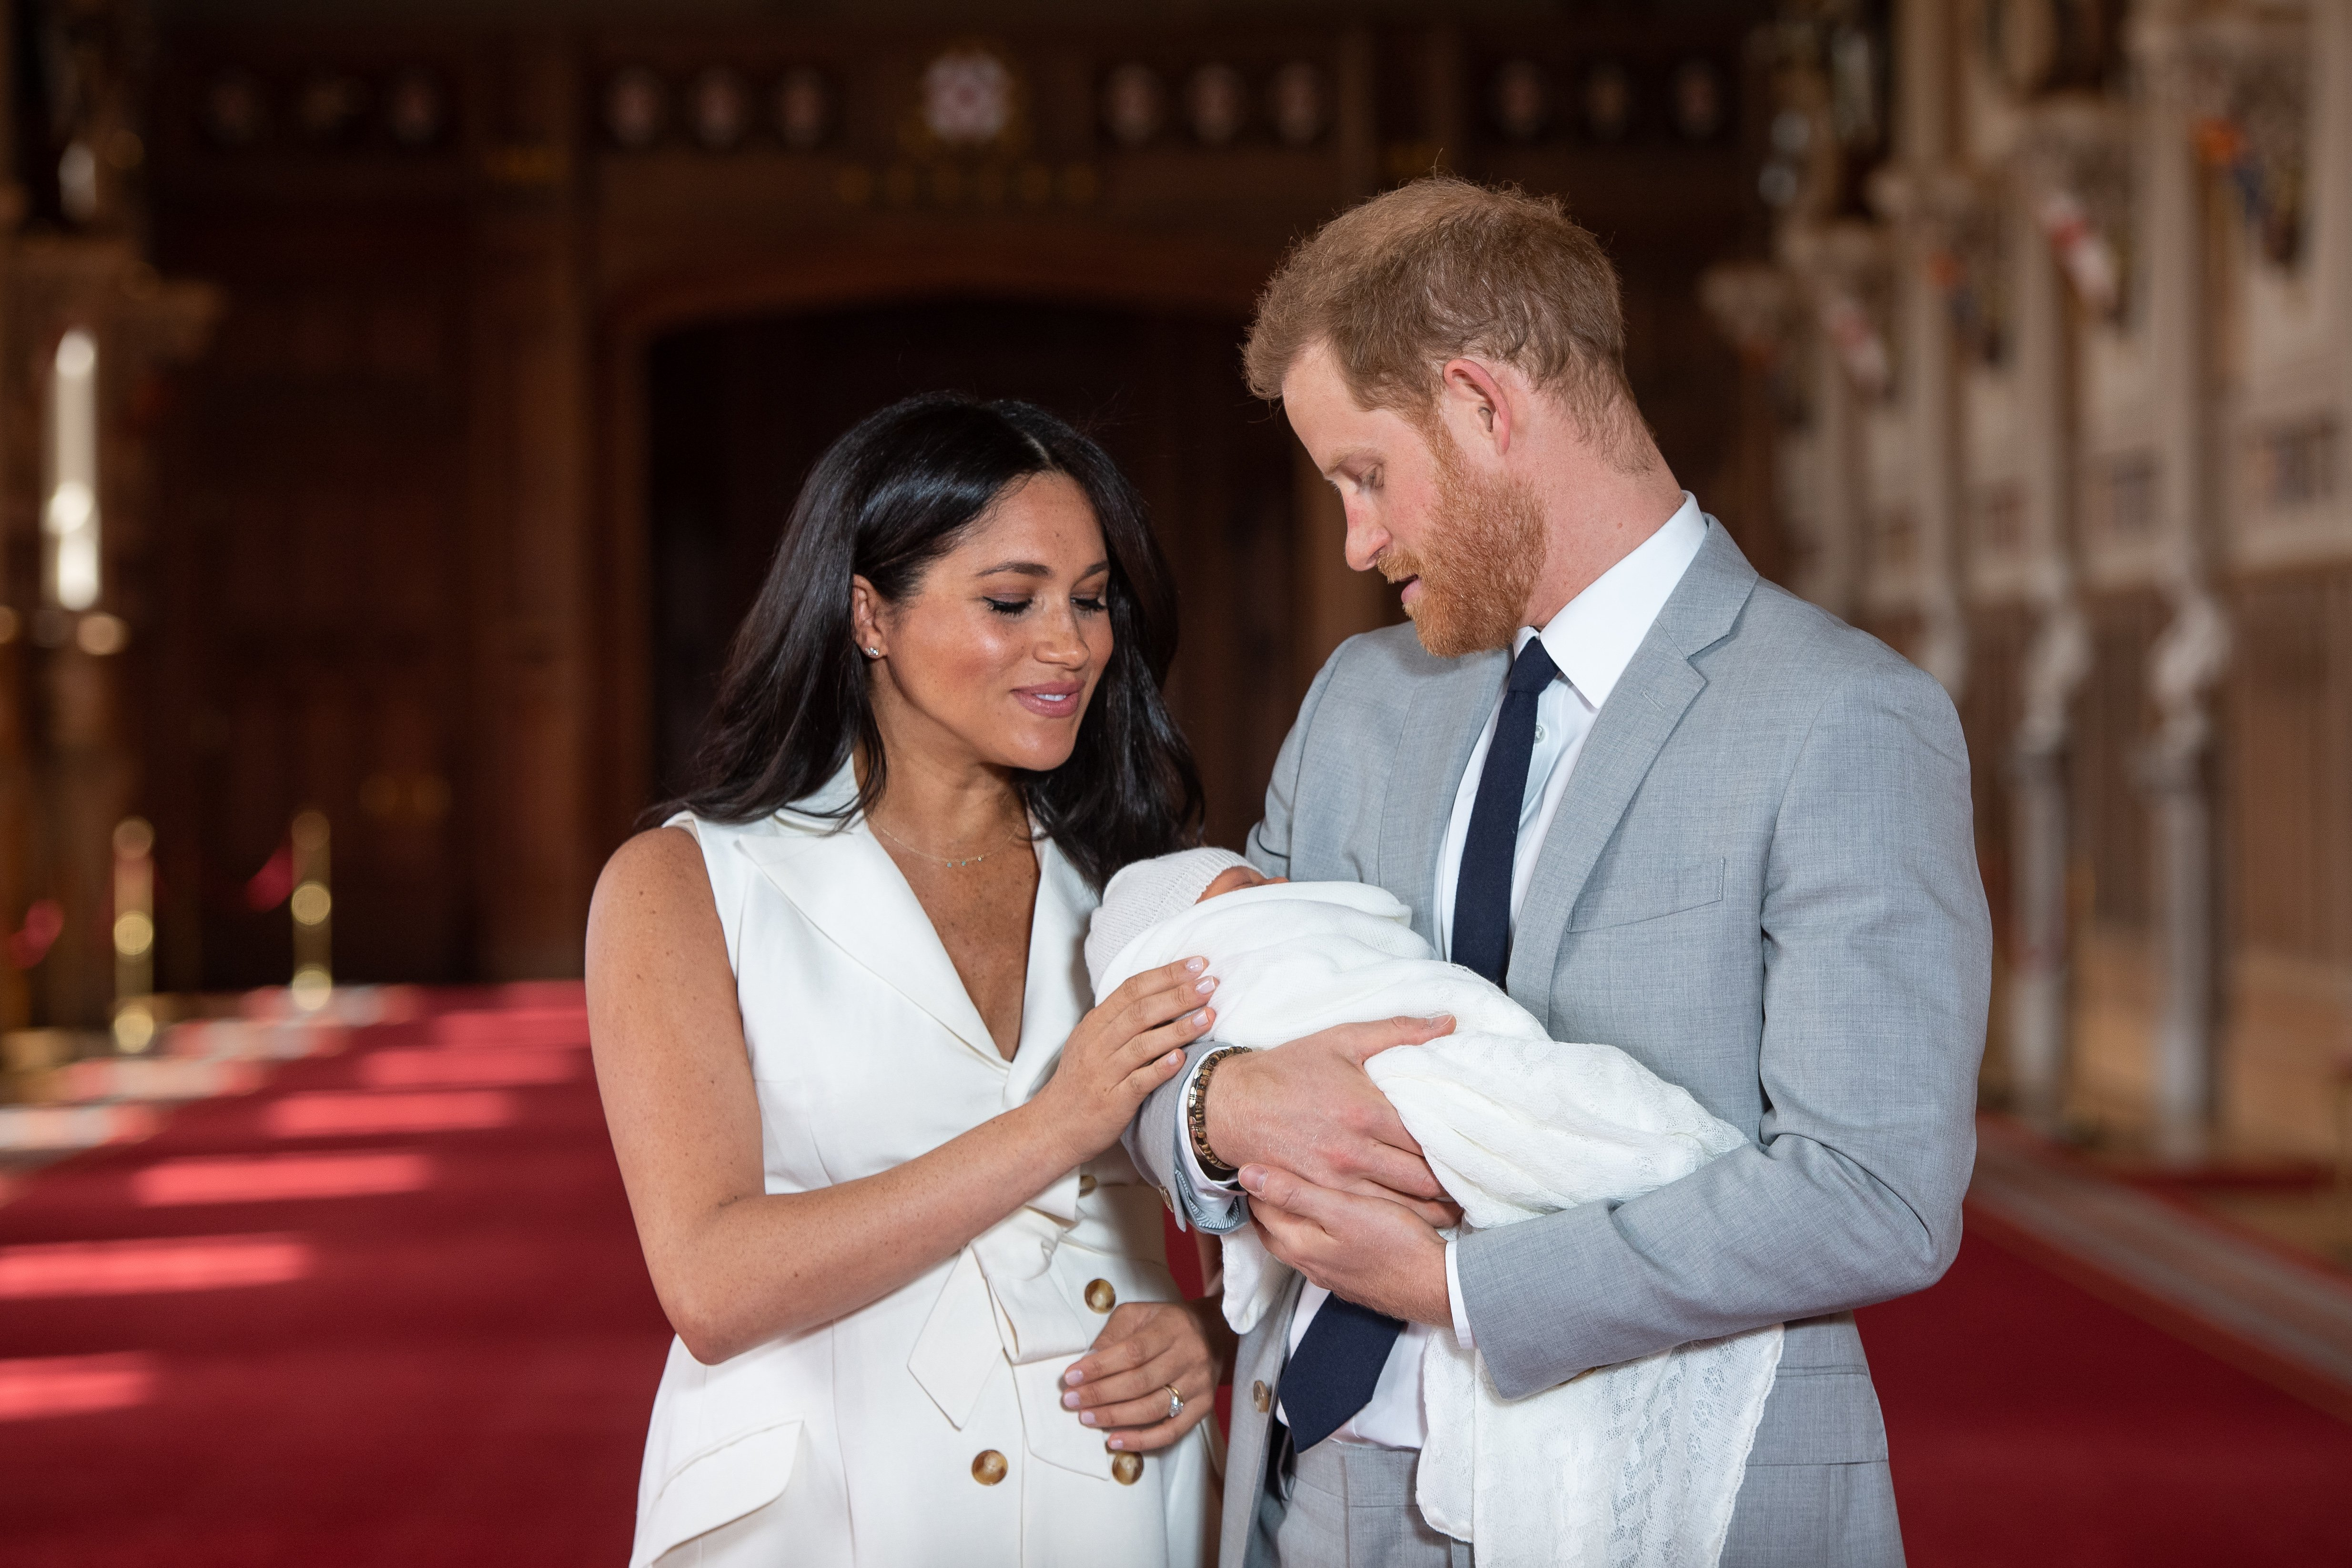 Prince Harry and Meghan Markle with their son Archie in St George's Hall at Windsor Castle on May 8, 2019, in Windsor, England. | Source: Getty Images.